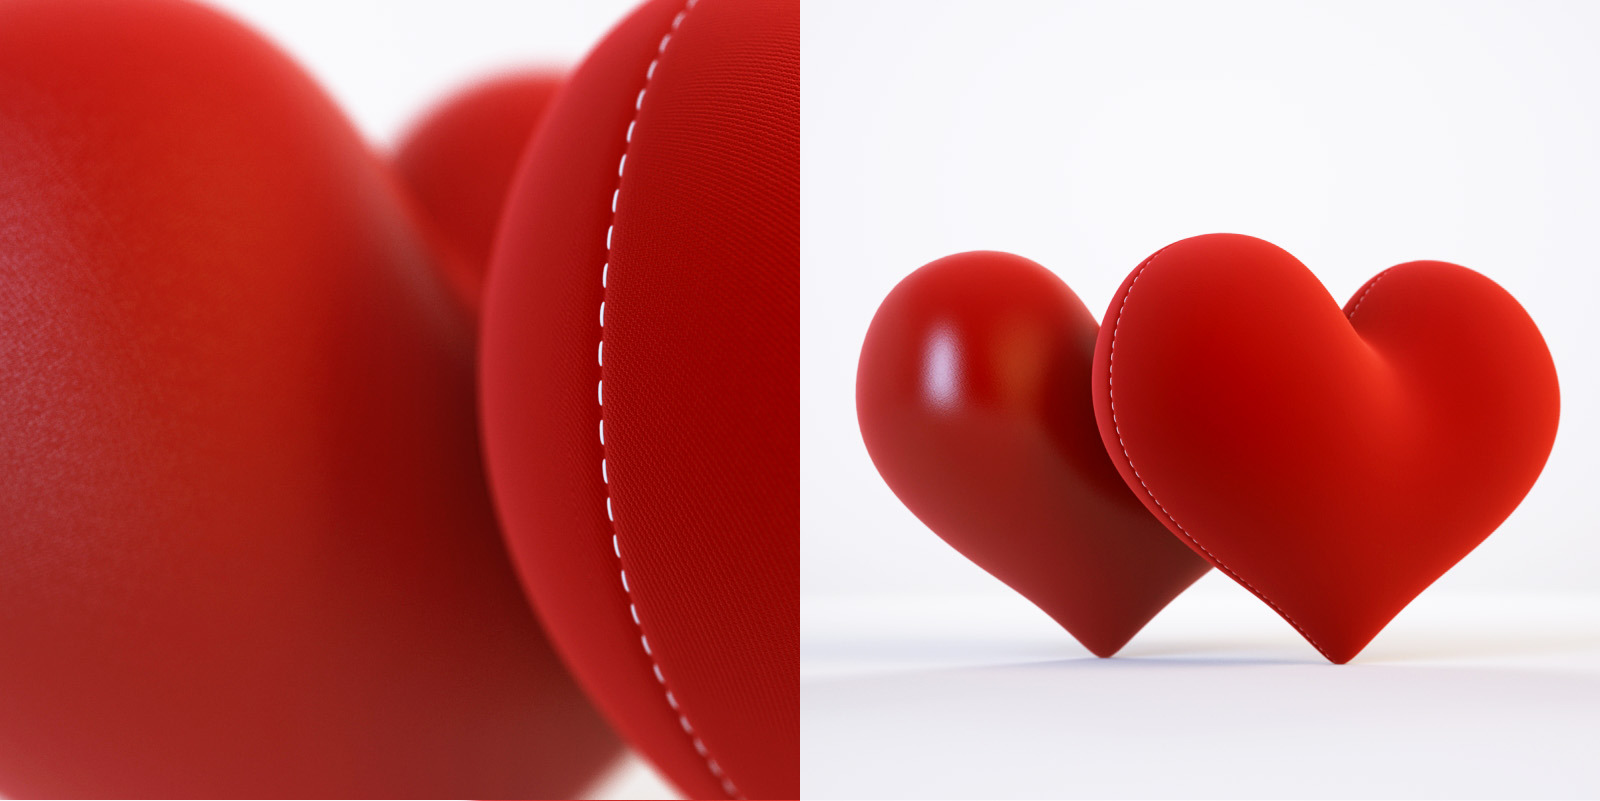 3d Model And 3d Scene With A Heart By Rnax 3docean